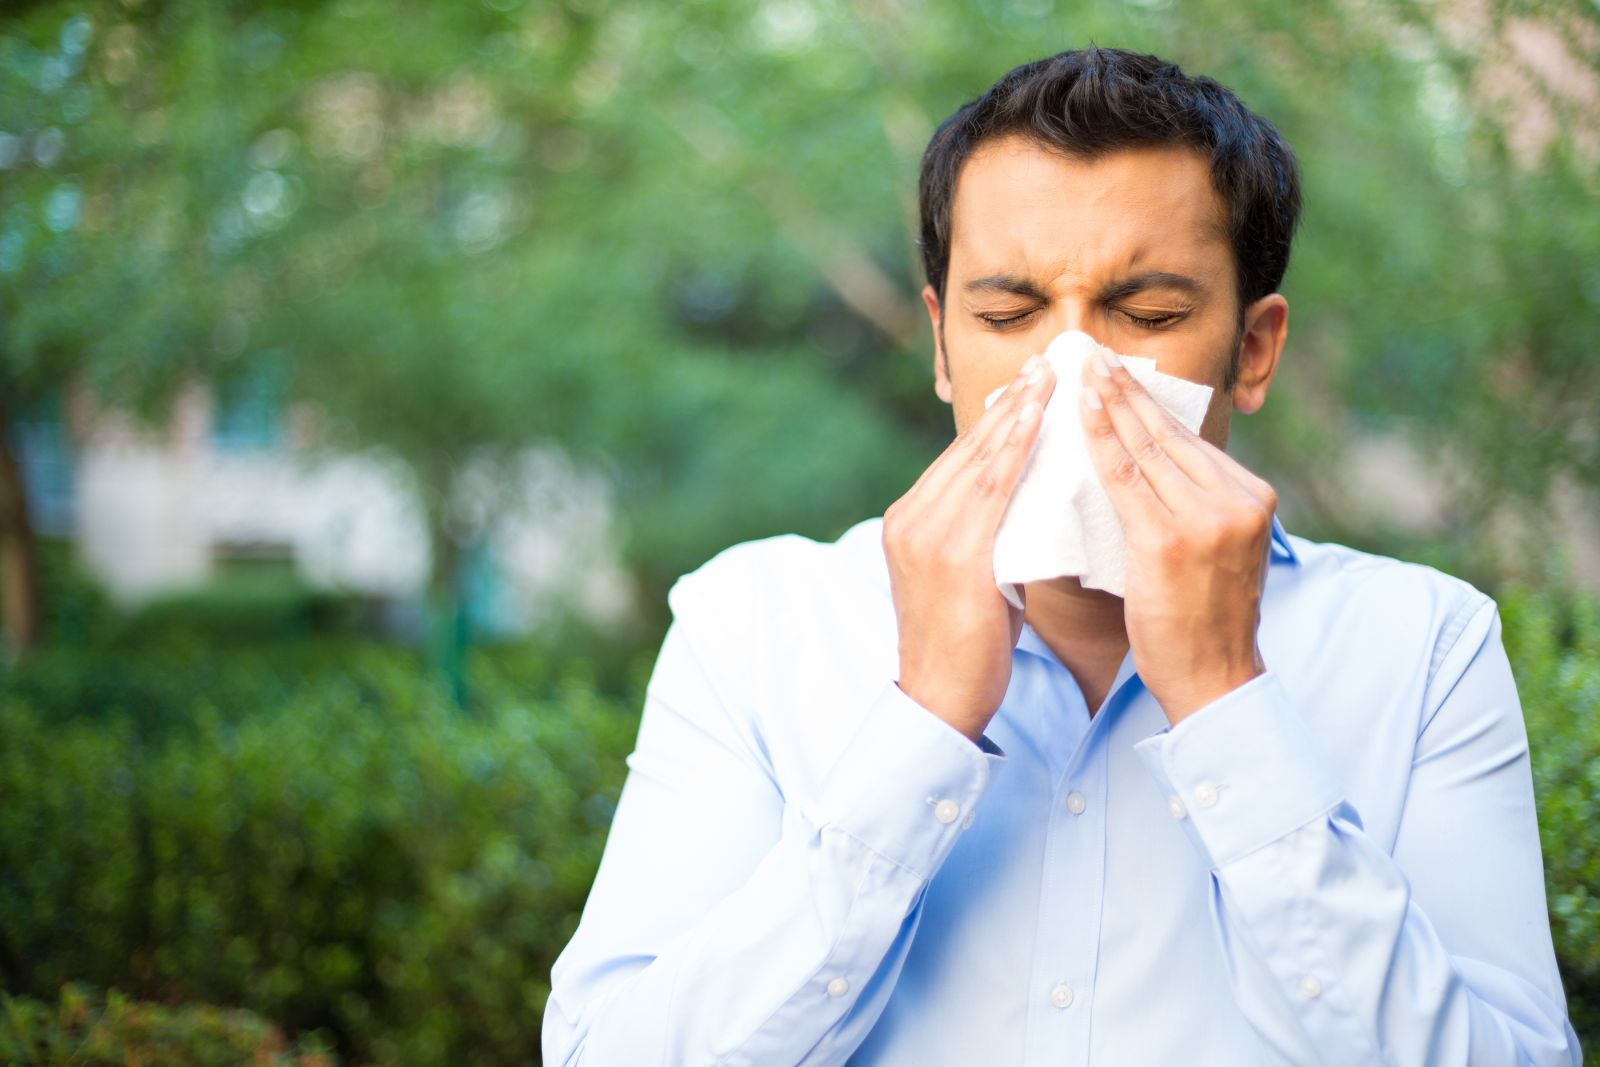 bigstock-Sick-allergies-allergy-pollen66507766-3.jpg